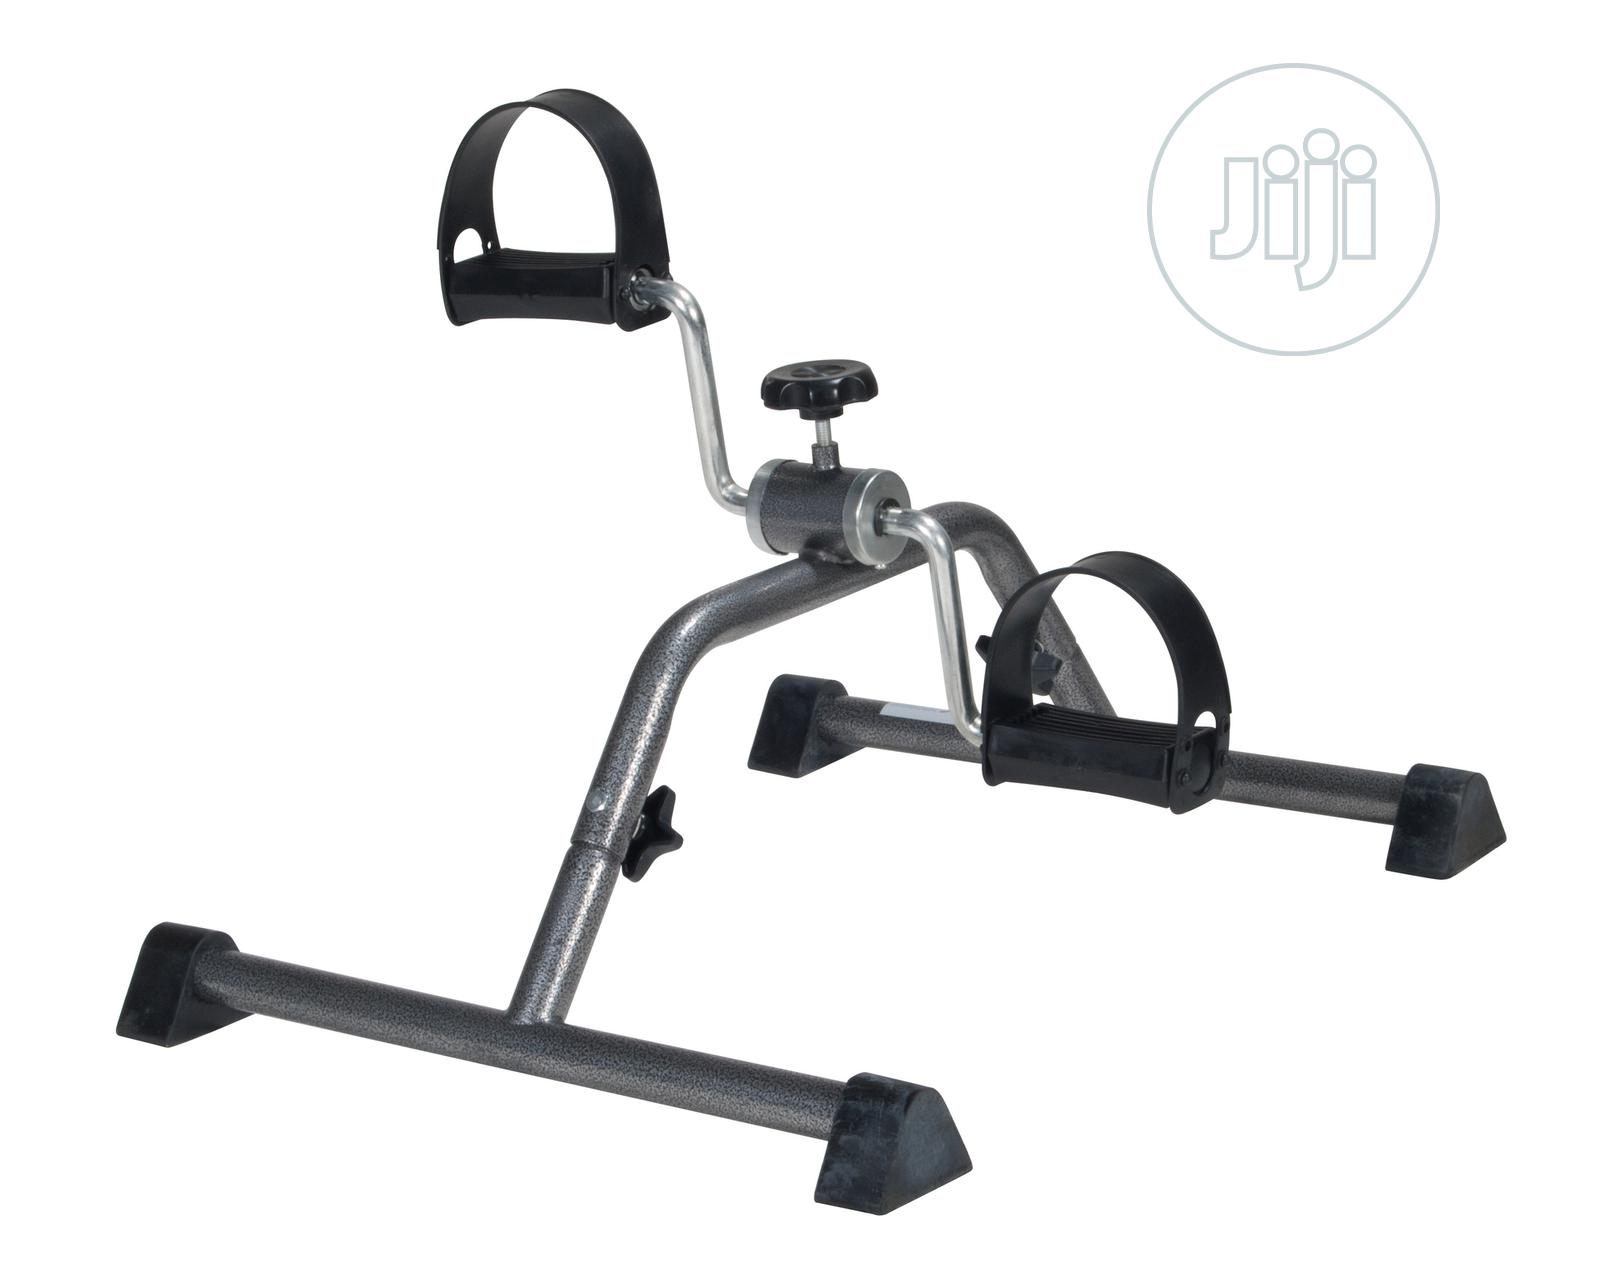 Compact Exercise Equipment For Arms And Legs